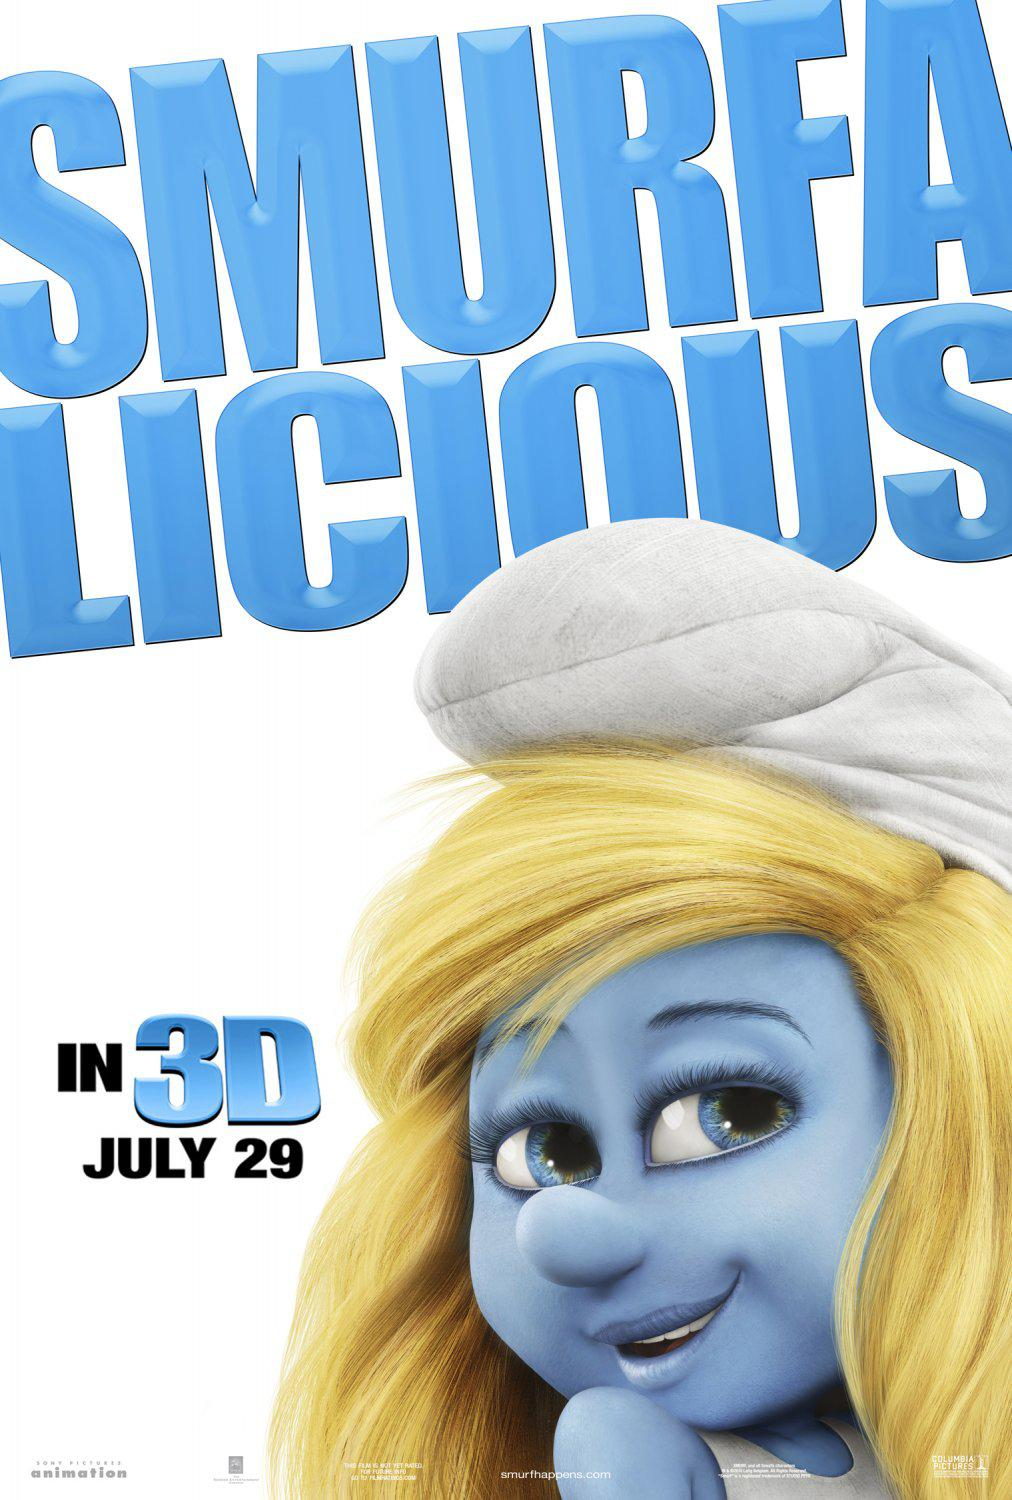 Film I Puffi in 3D - Movie Smurfs in 3D - Smurfalicious - Puffoso